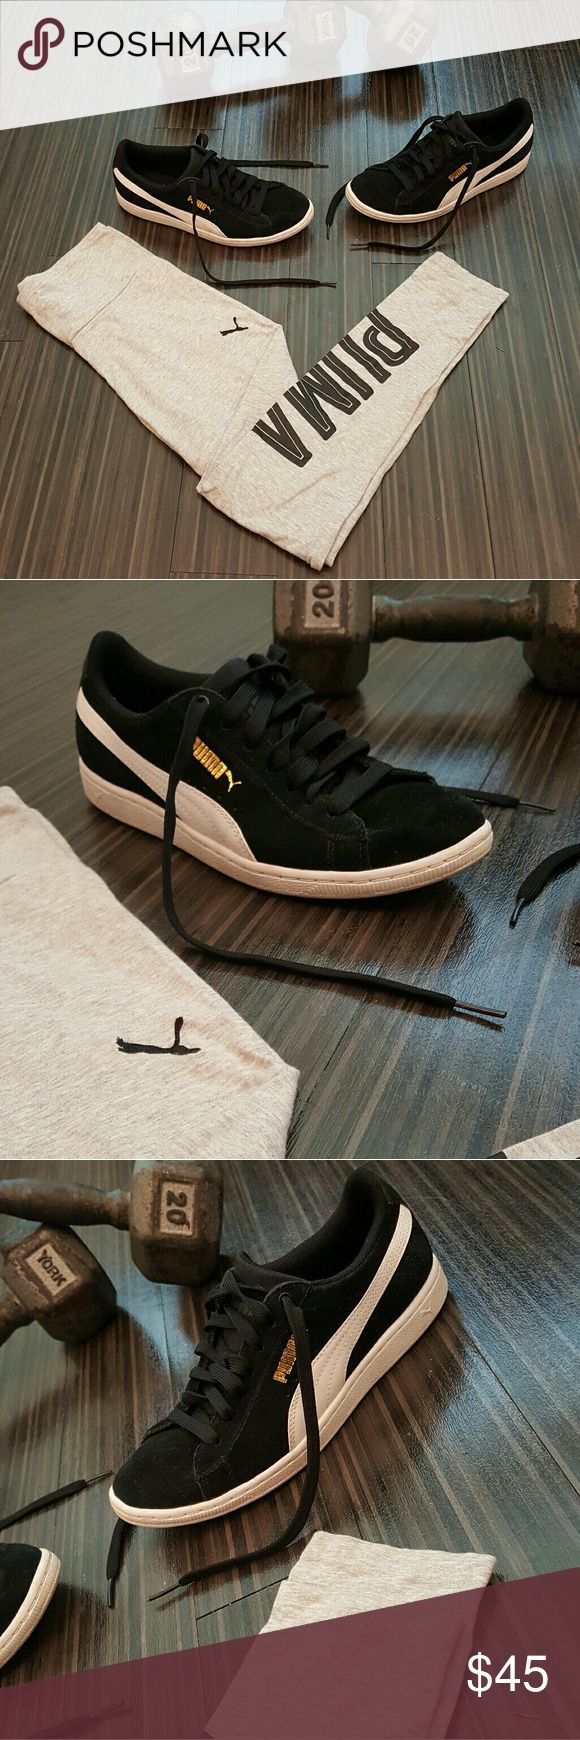 Details about puma womens suede classic rg black running shoes - Newclassic Puma Suede Shoes Womens Size 7 5 Like New Condition Accepting Only Reasonable Offers